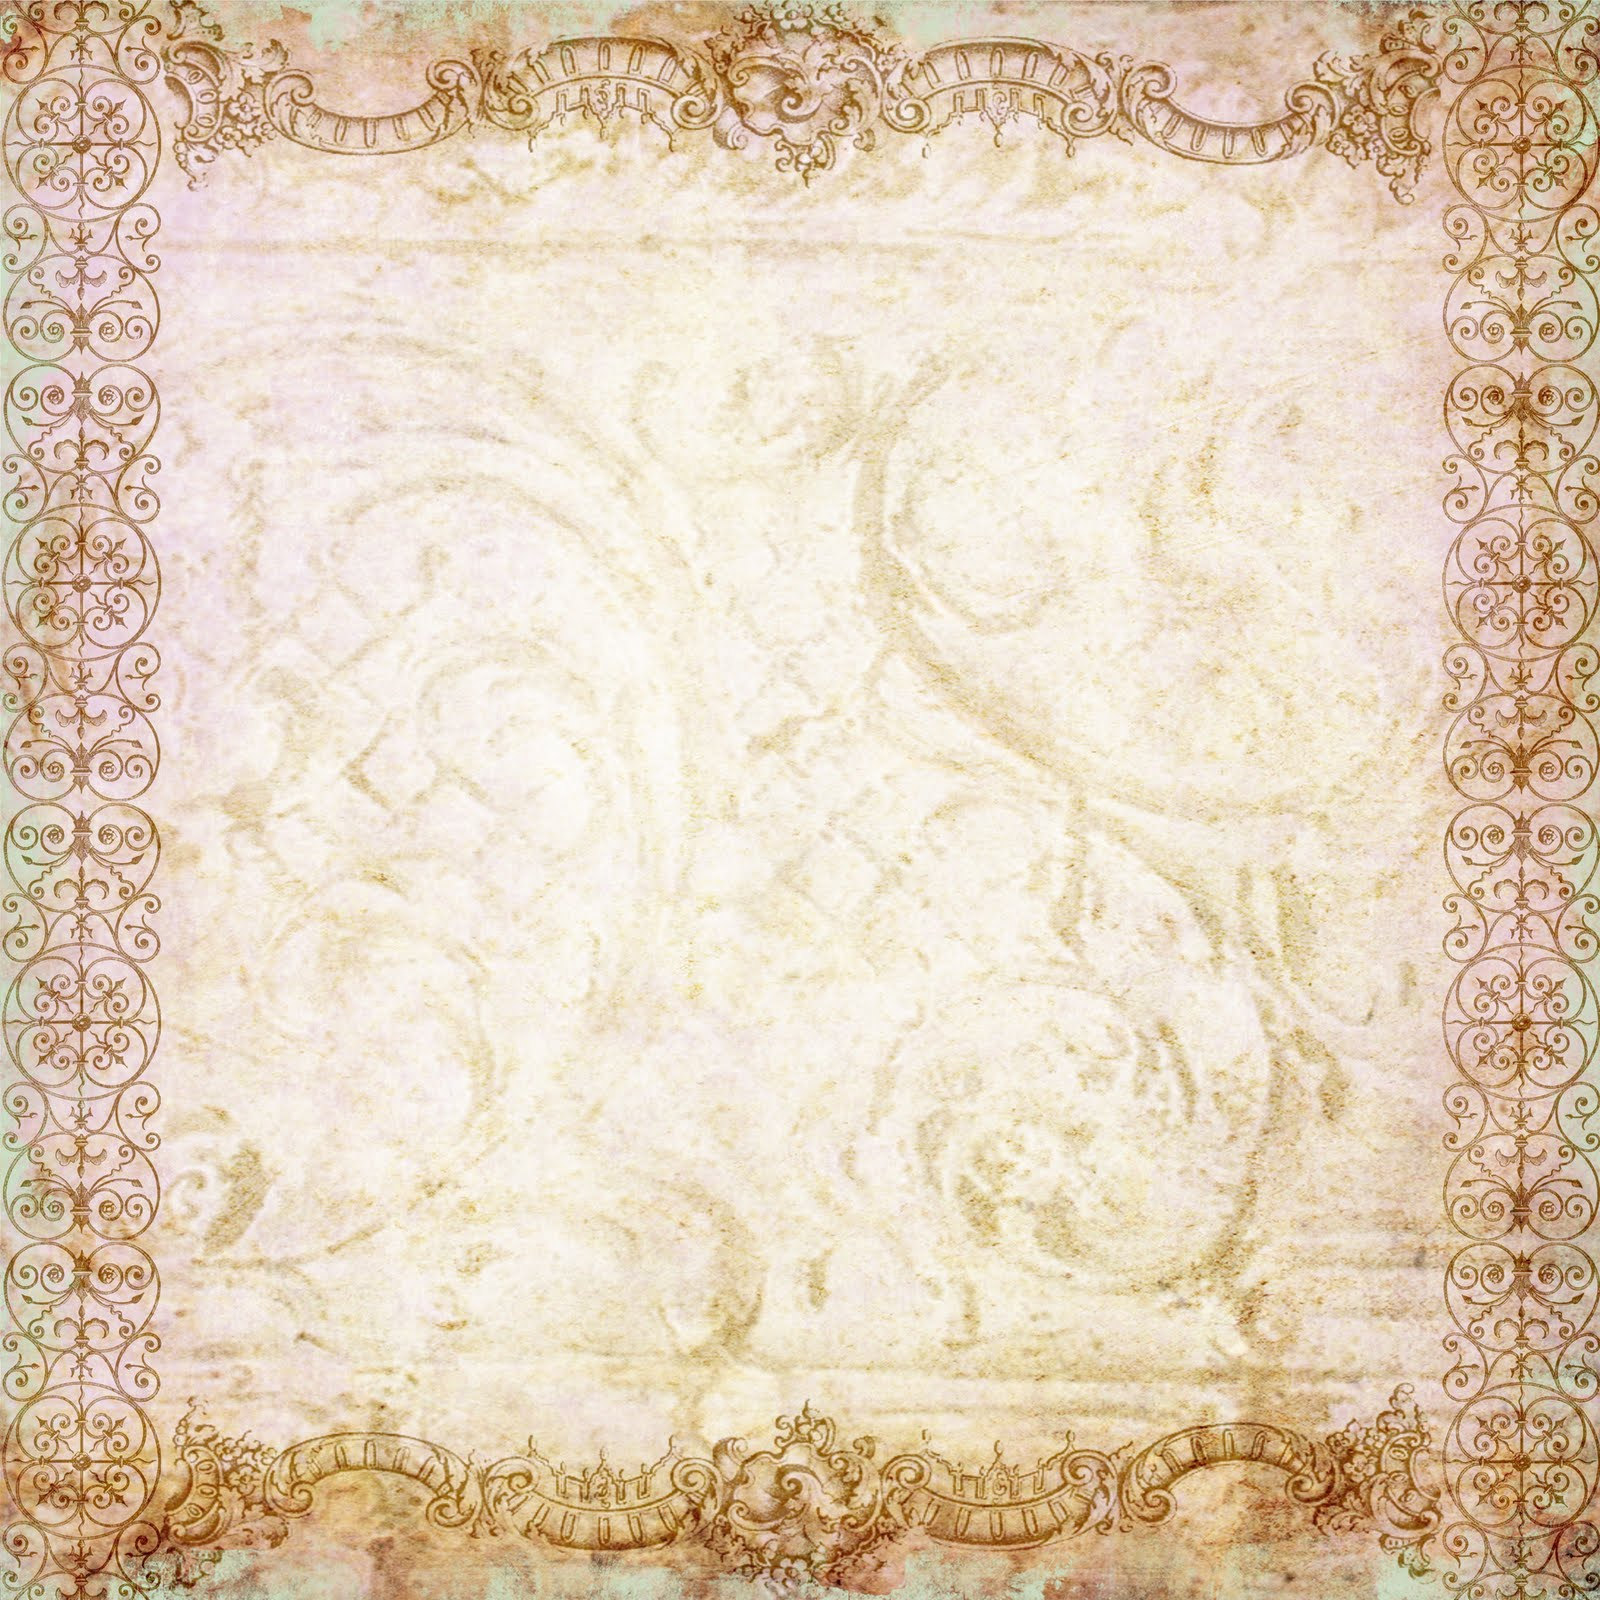 Antique Metal Ceiling Tiles Emulate Real Tin!